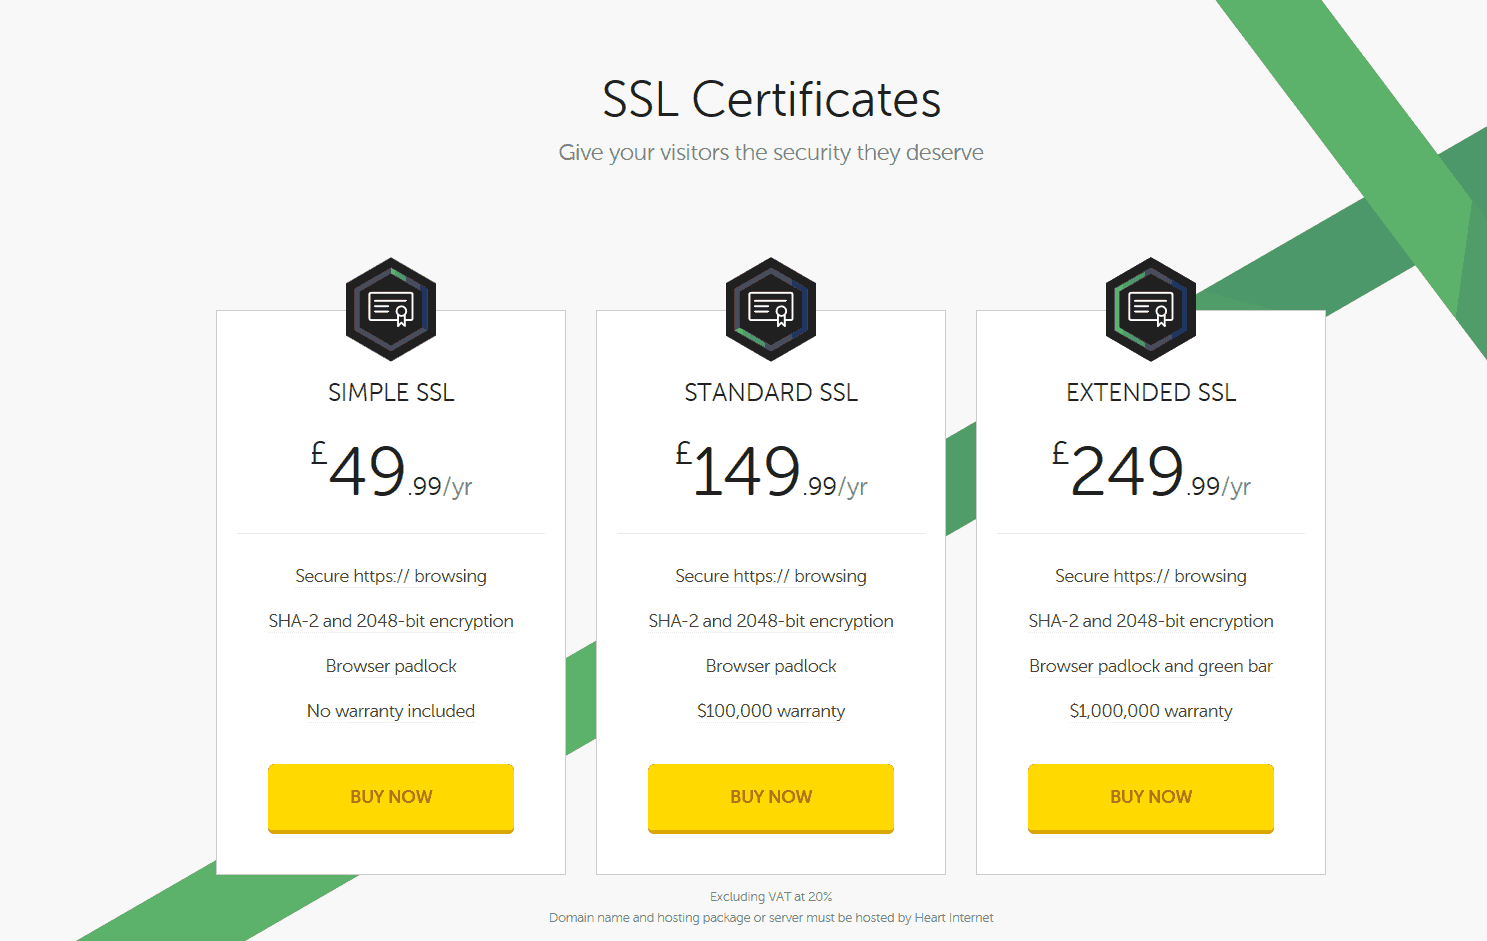 Heart Internet SSL Pricing